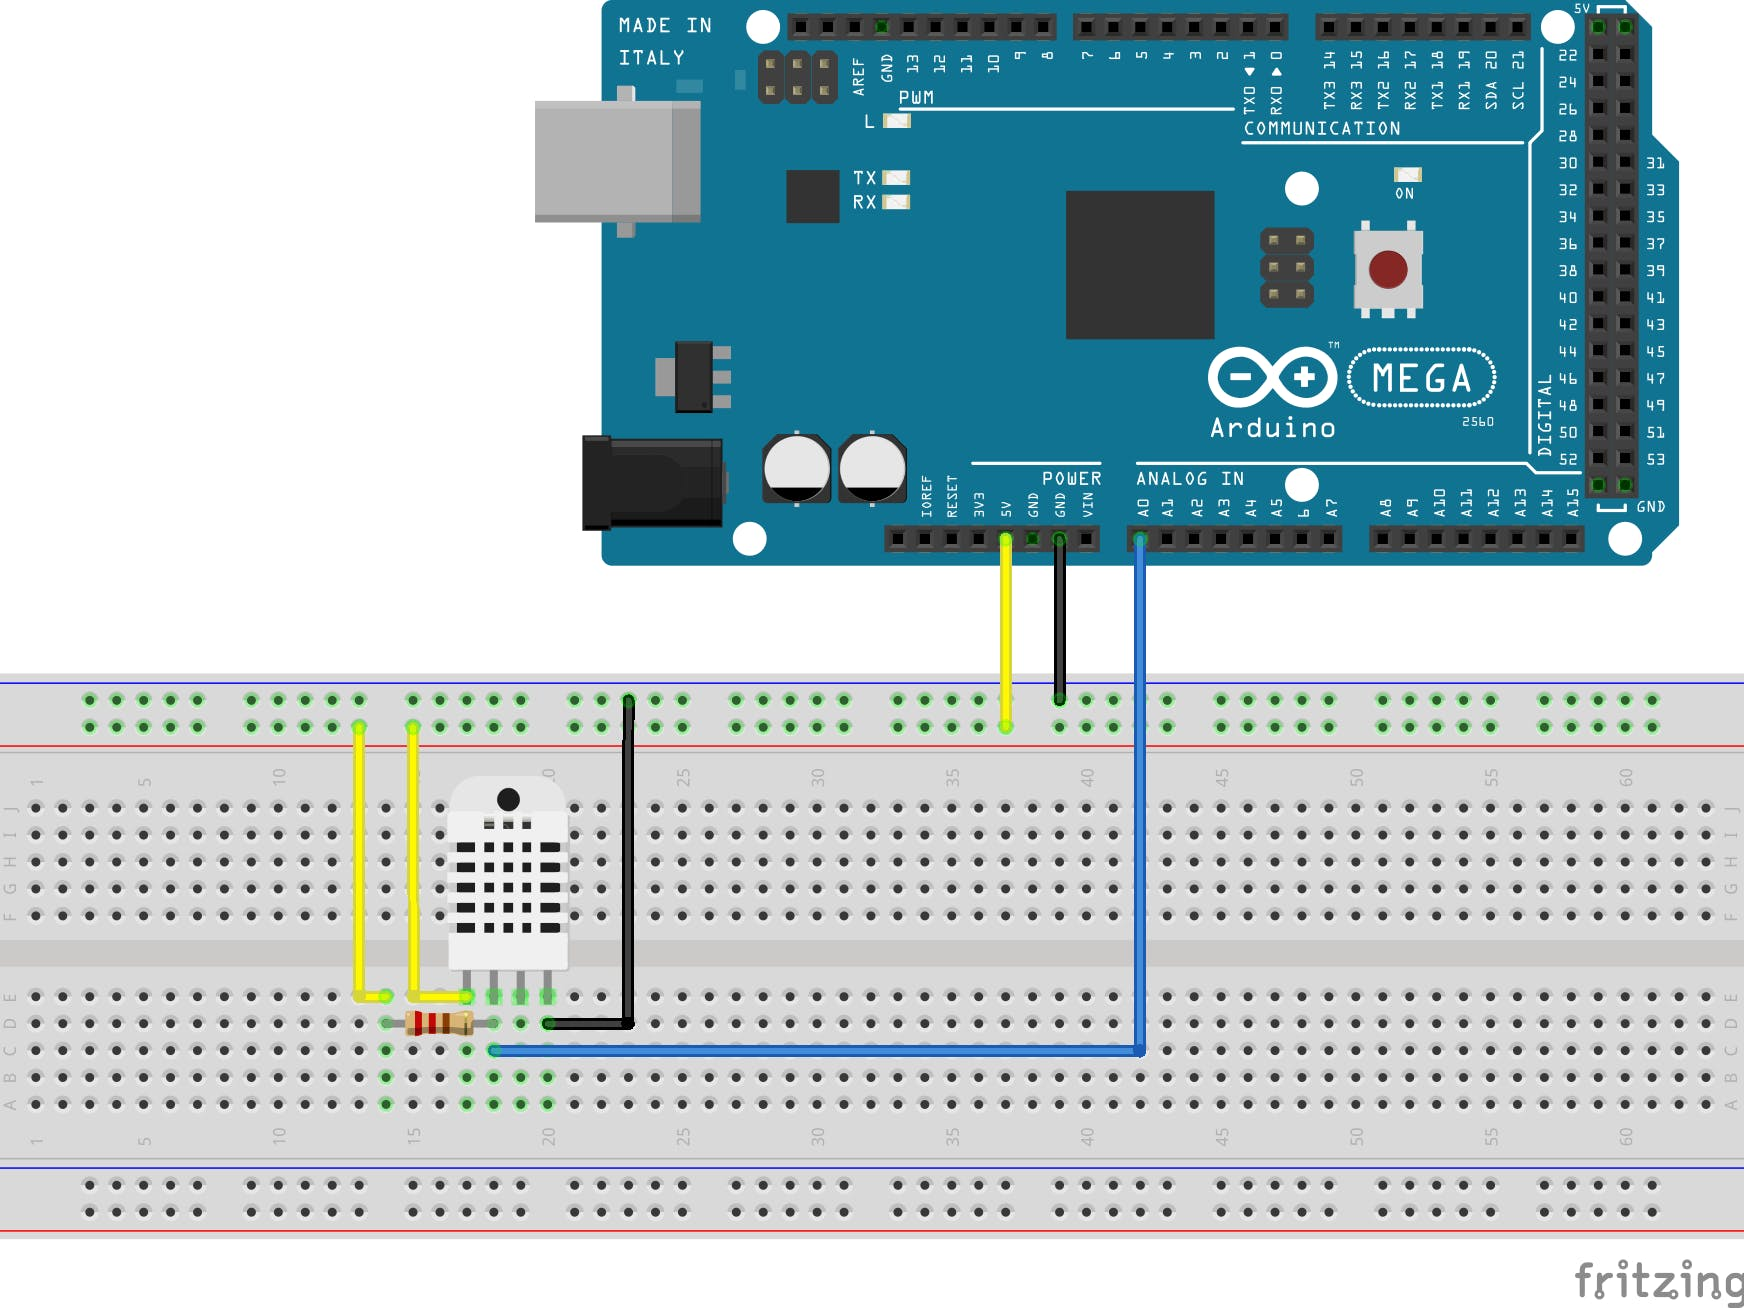 Humidity and Temperature Sensor for Time-based Measurements